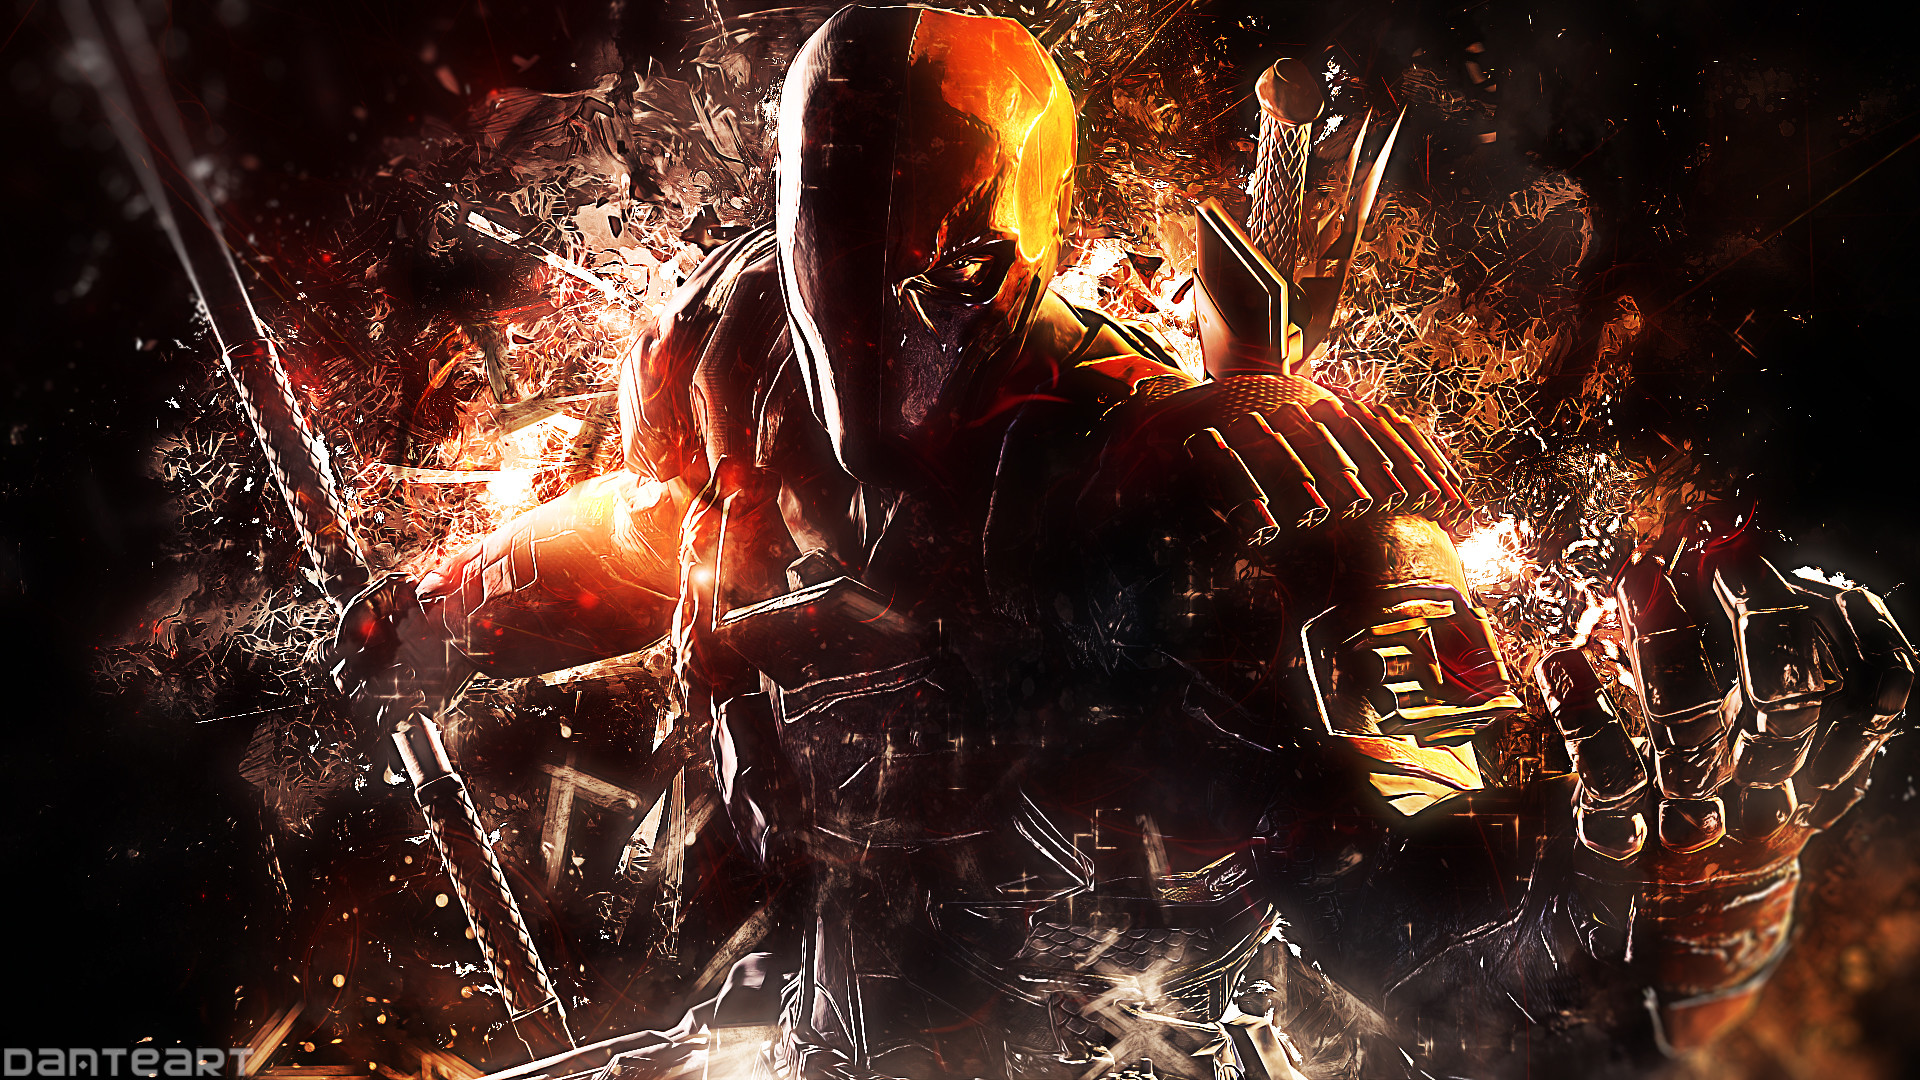 1920x1080 Batman Arkham Origins Deathstroke Wallpaper by DanteArtWallpapers Batman  Arkham Origins Deathstroke Wallpaper by DanteArtWallpapers